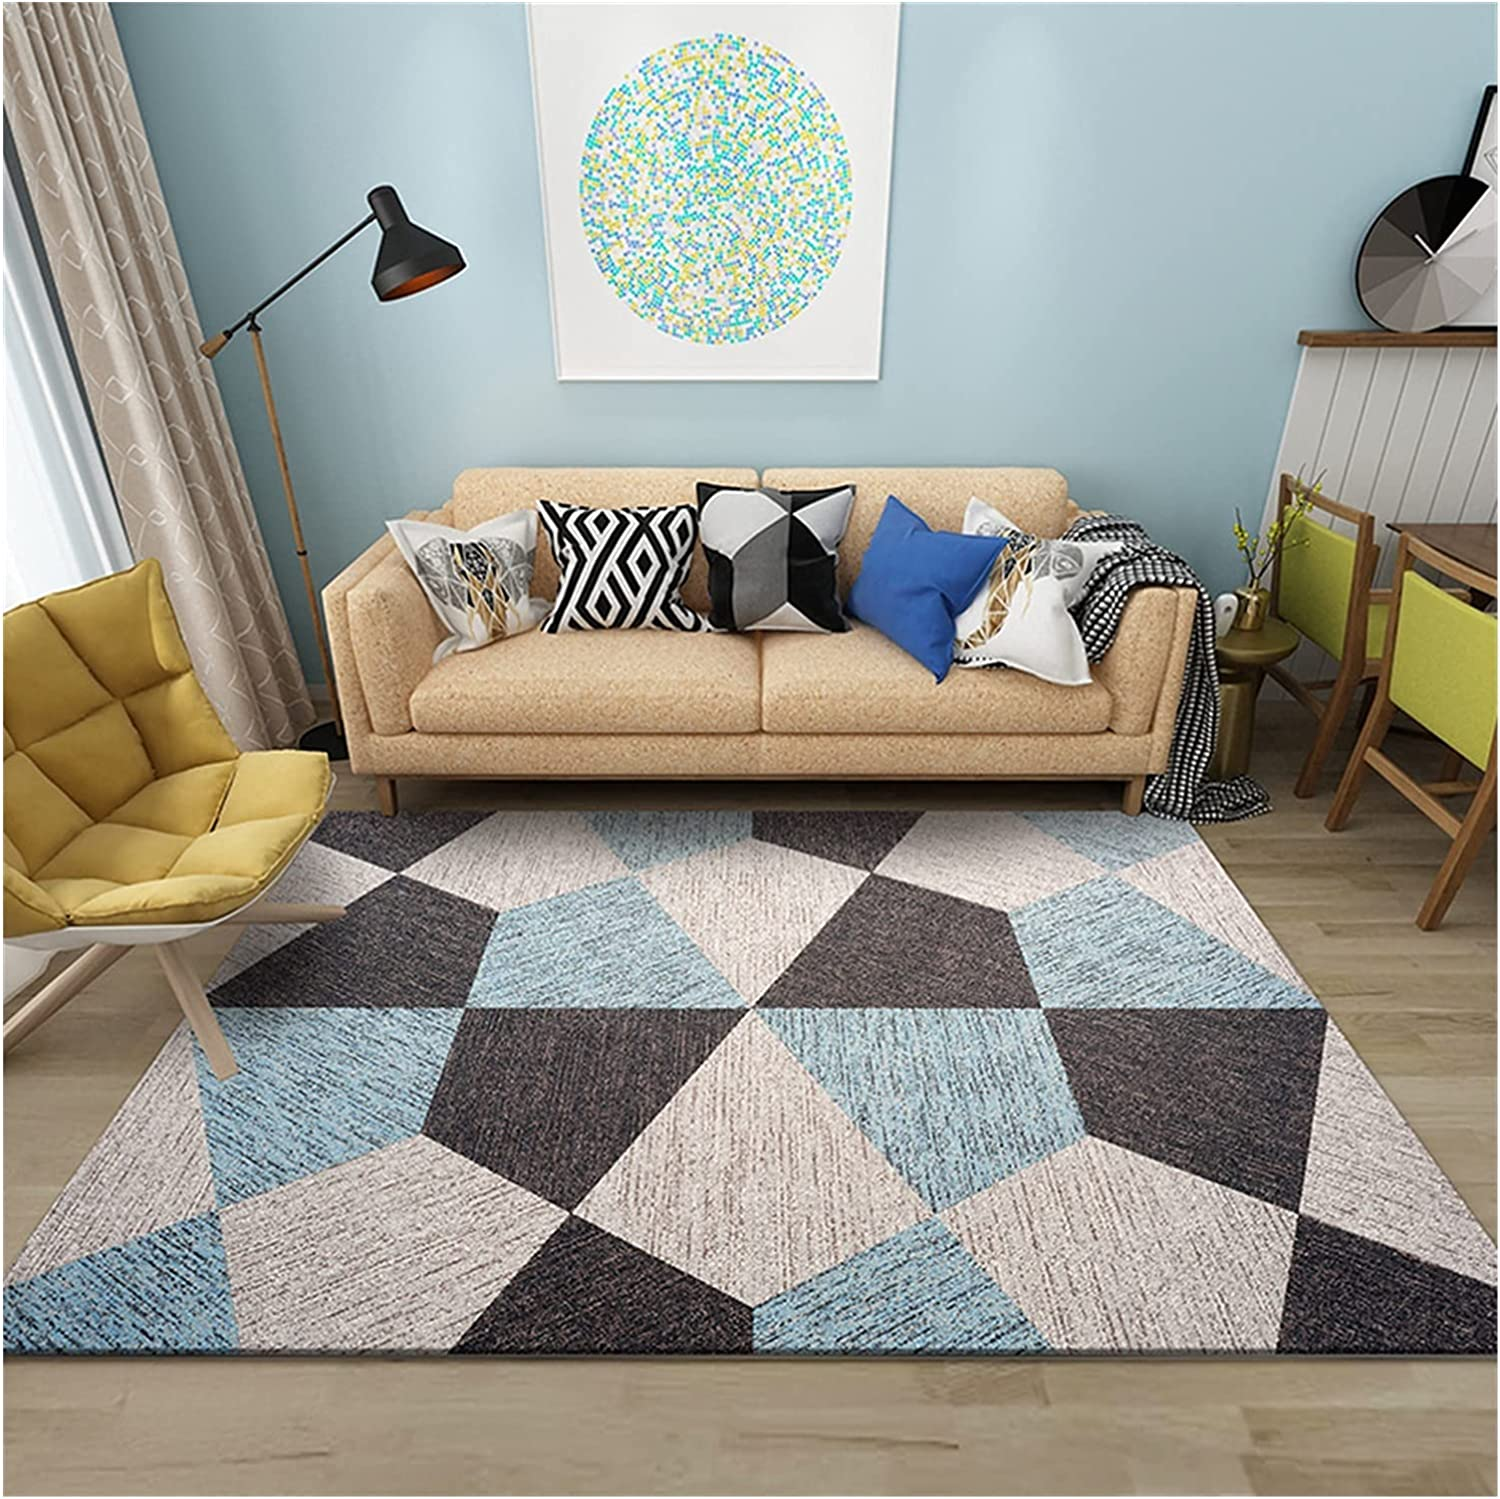 Home Living Room Sales results No. 1 Bedside Carpet Liv Washable in Used Non-Slip Al sold out.